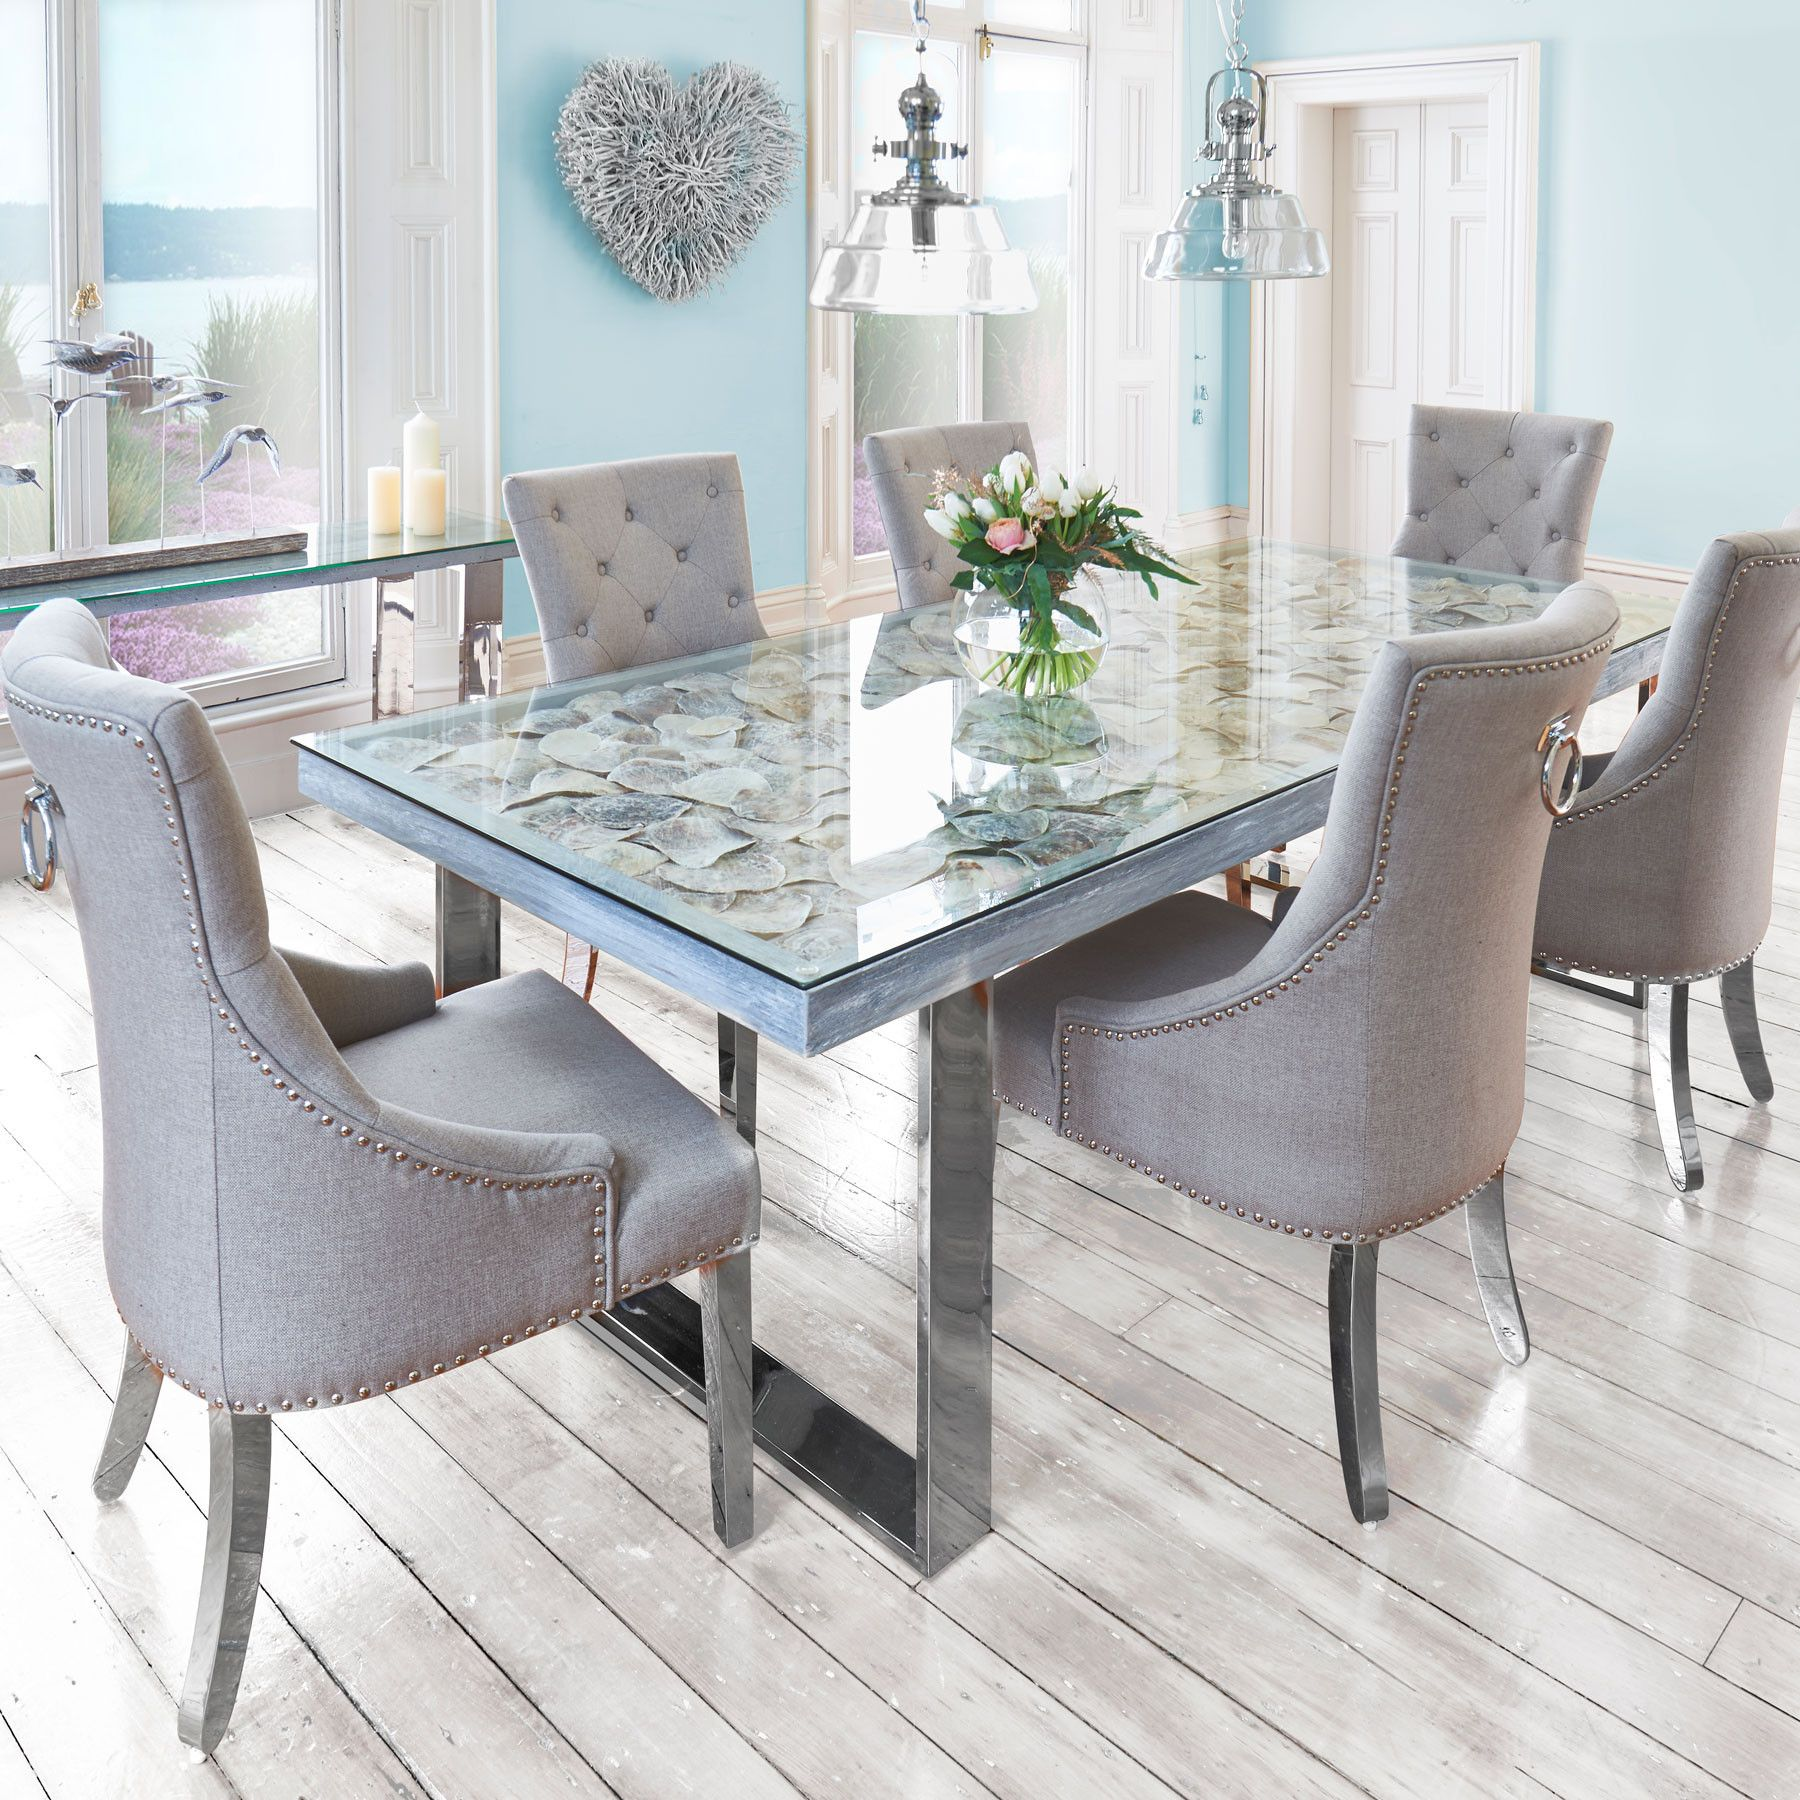 Image Result For Seashell Dining Table Elegant Dining Room